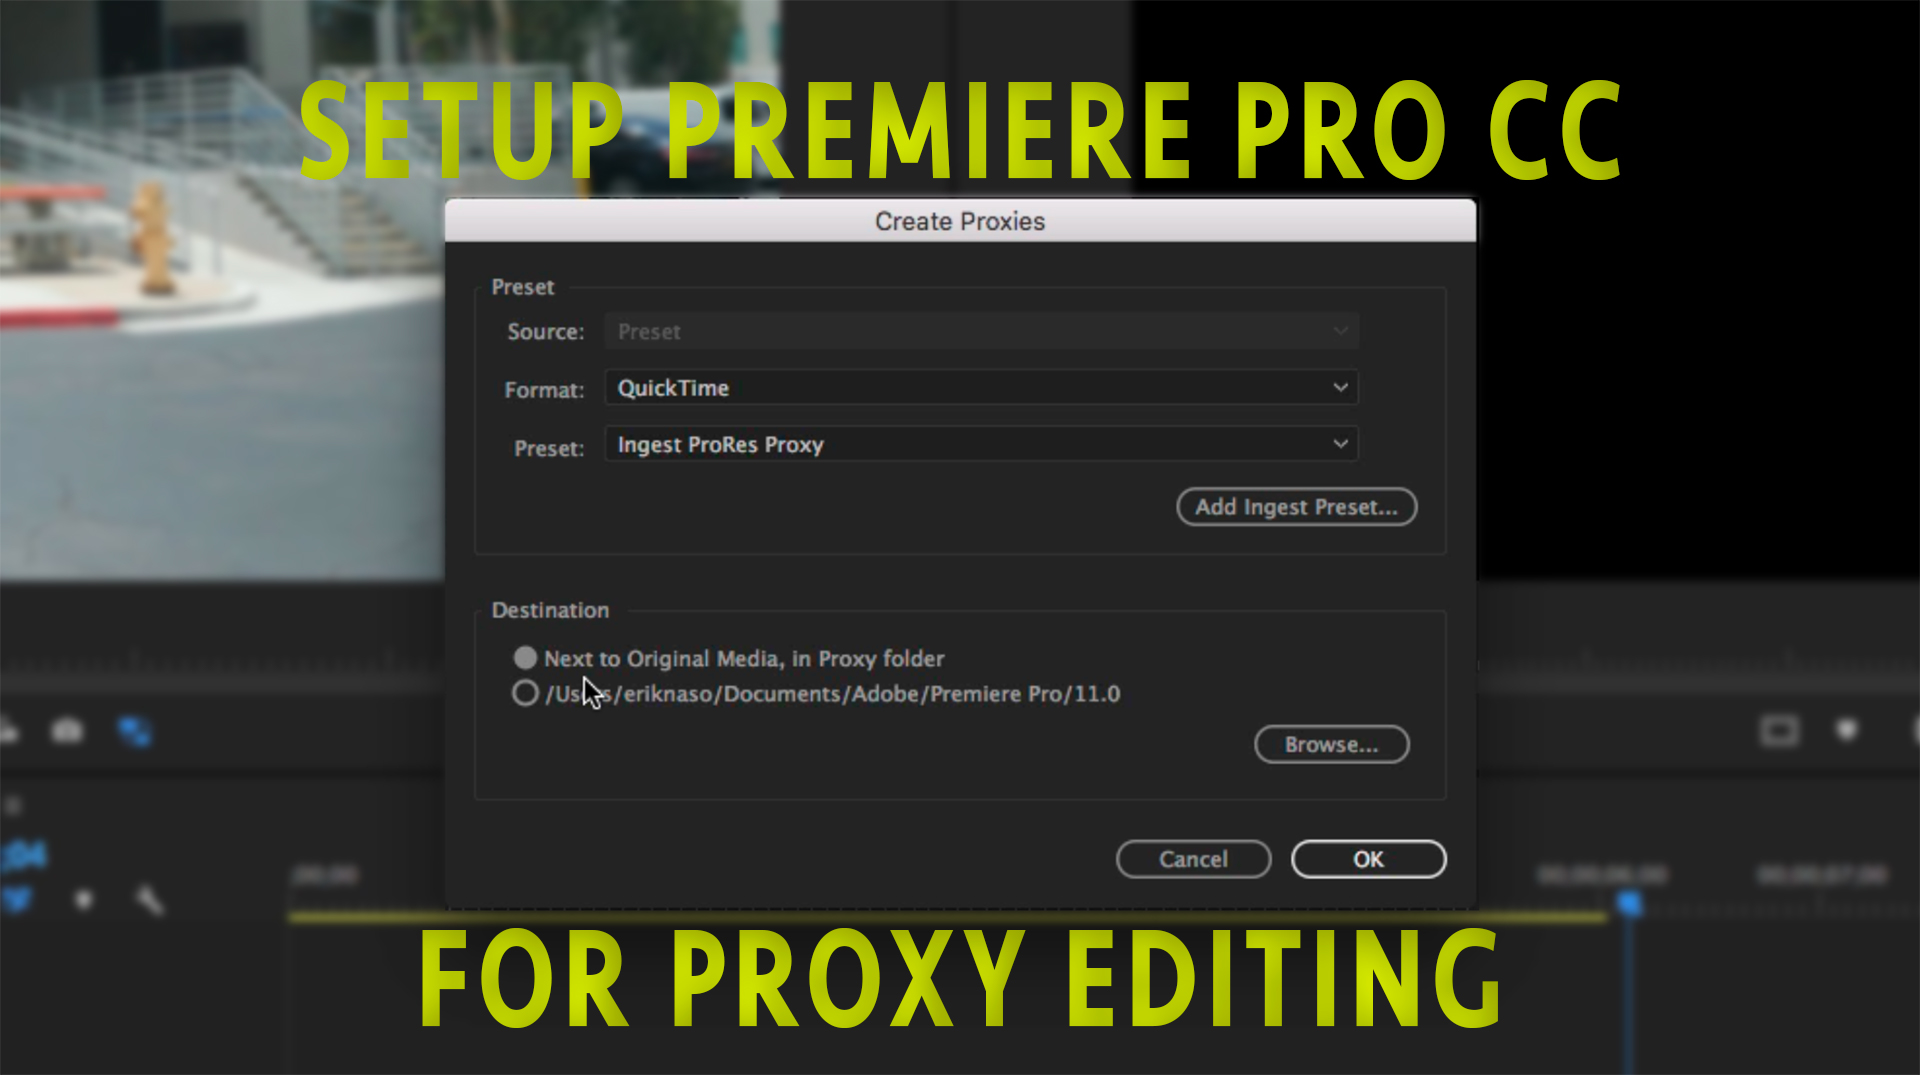 Three ways to setup Premiere Pro CC for editing with proxies |